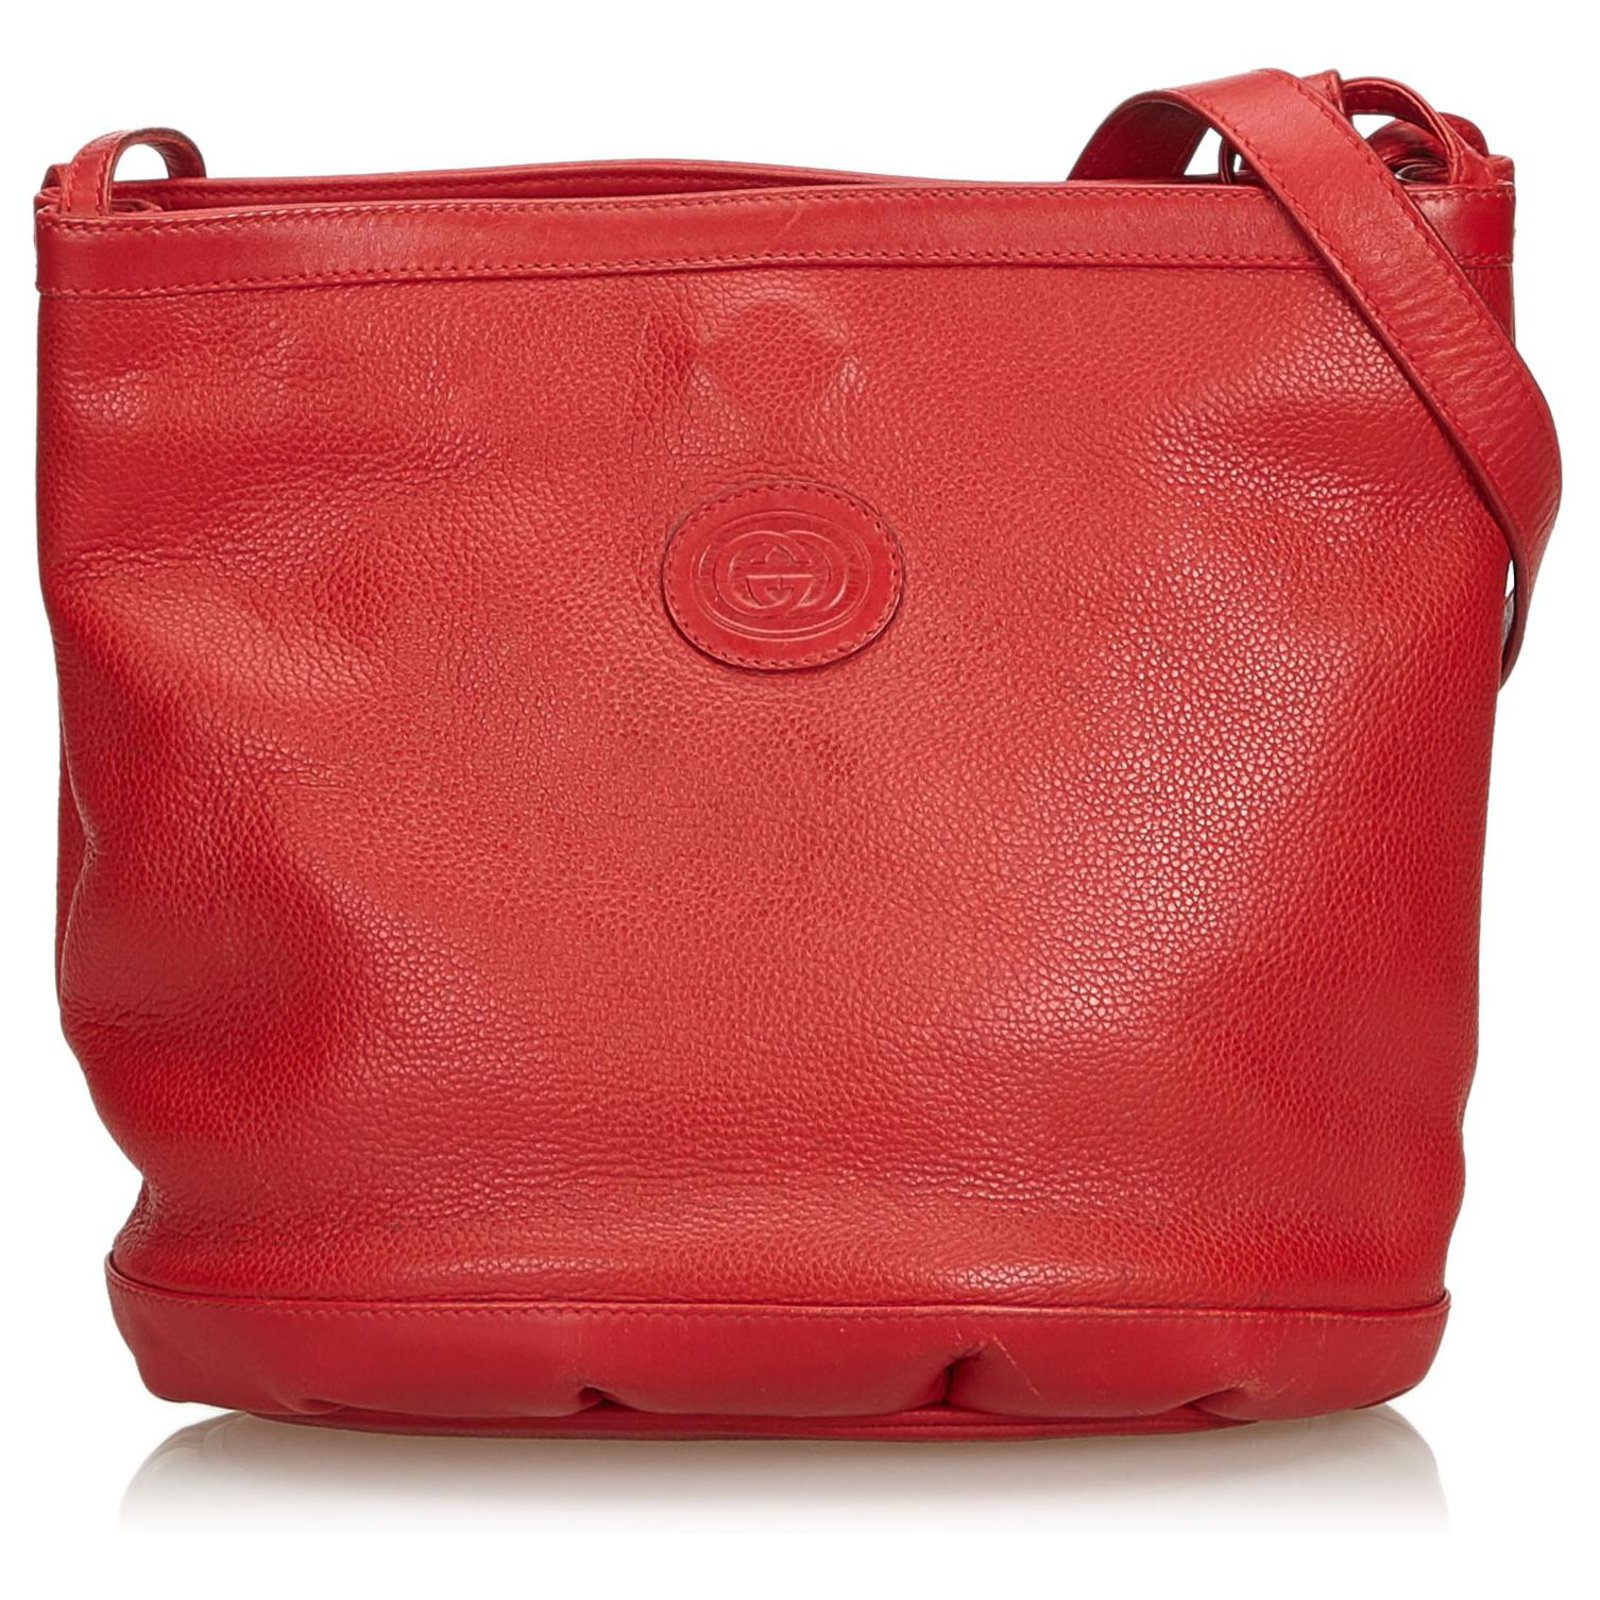 446ed63d452 Gucci Red Leather Crossbody Bag